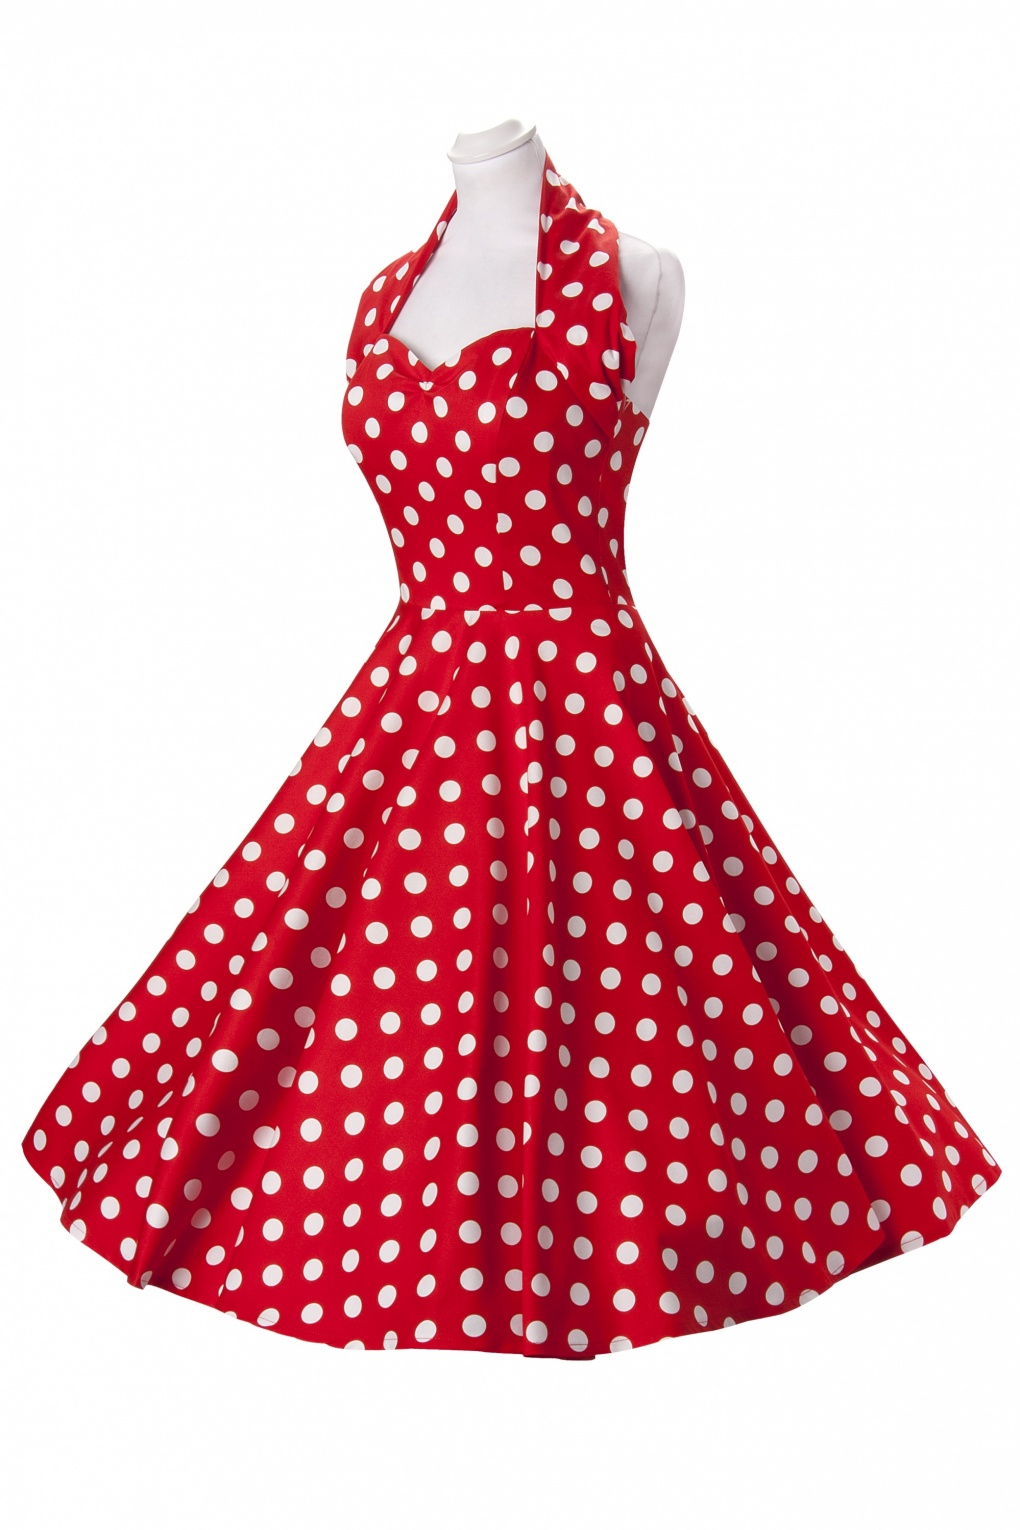 Vivien of Holloway - 50s Retro halter Polka Dot Red White swing dress cotton sateen